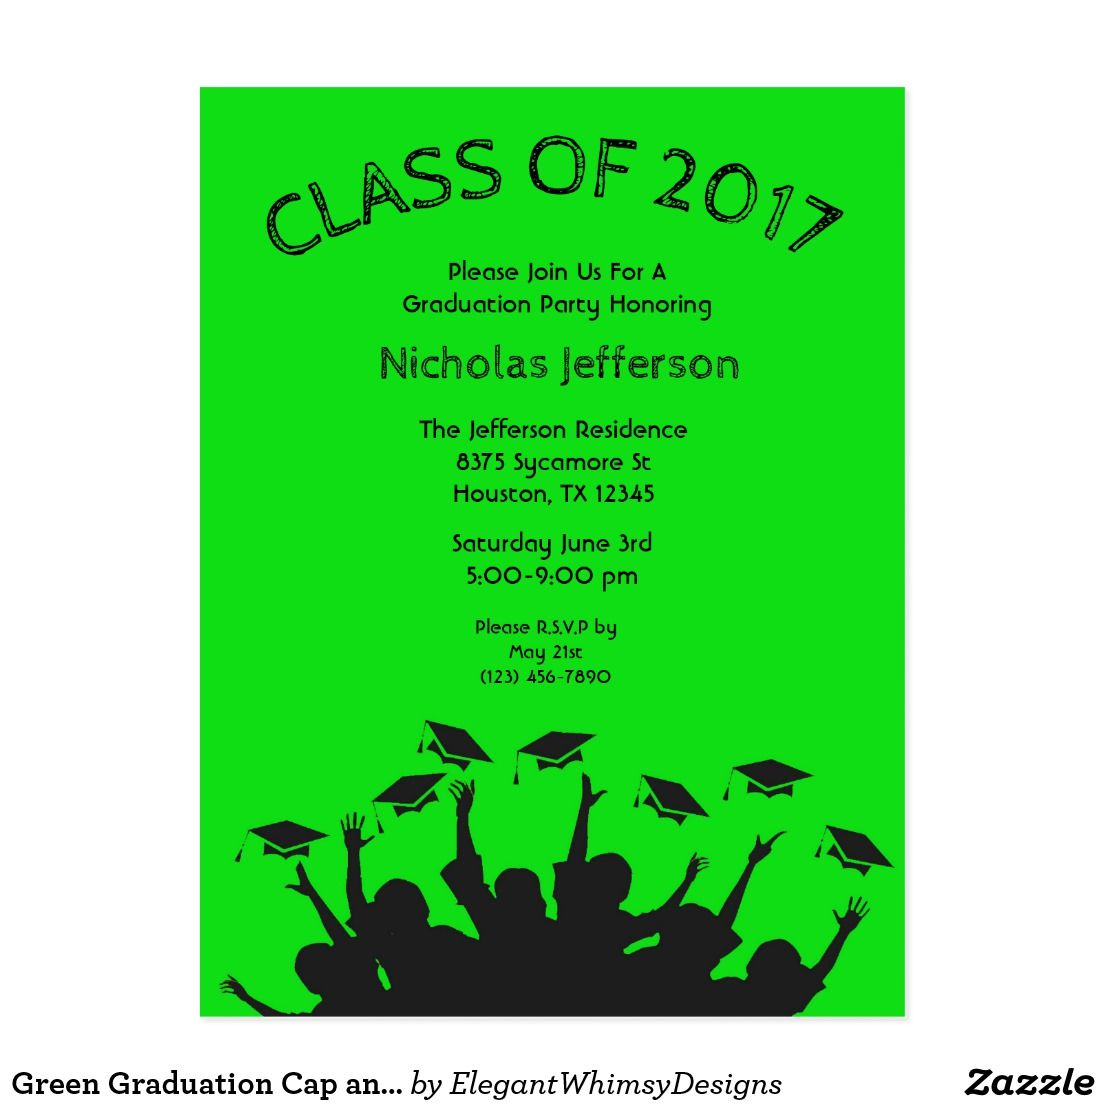 Green Graduation Cap and Gown Cap Toss Invitation | Pinterest ...